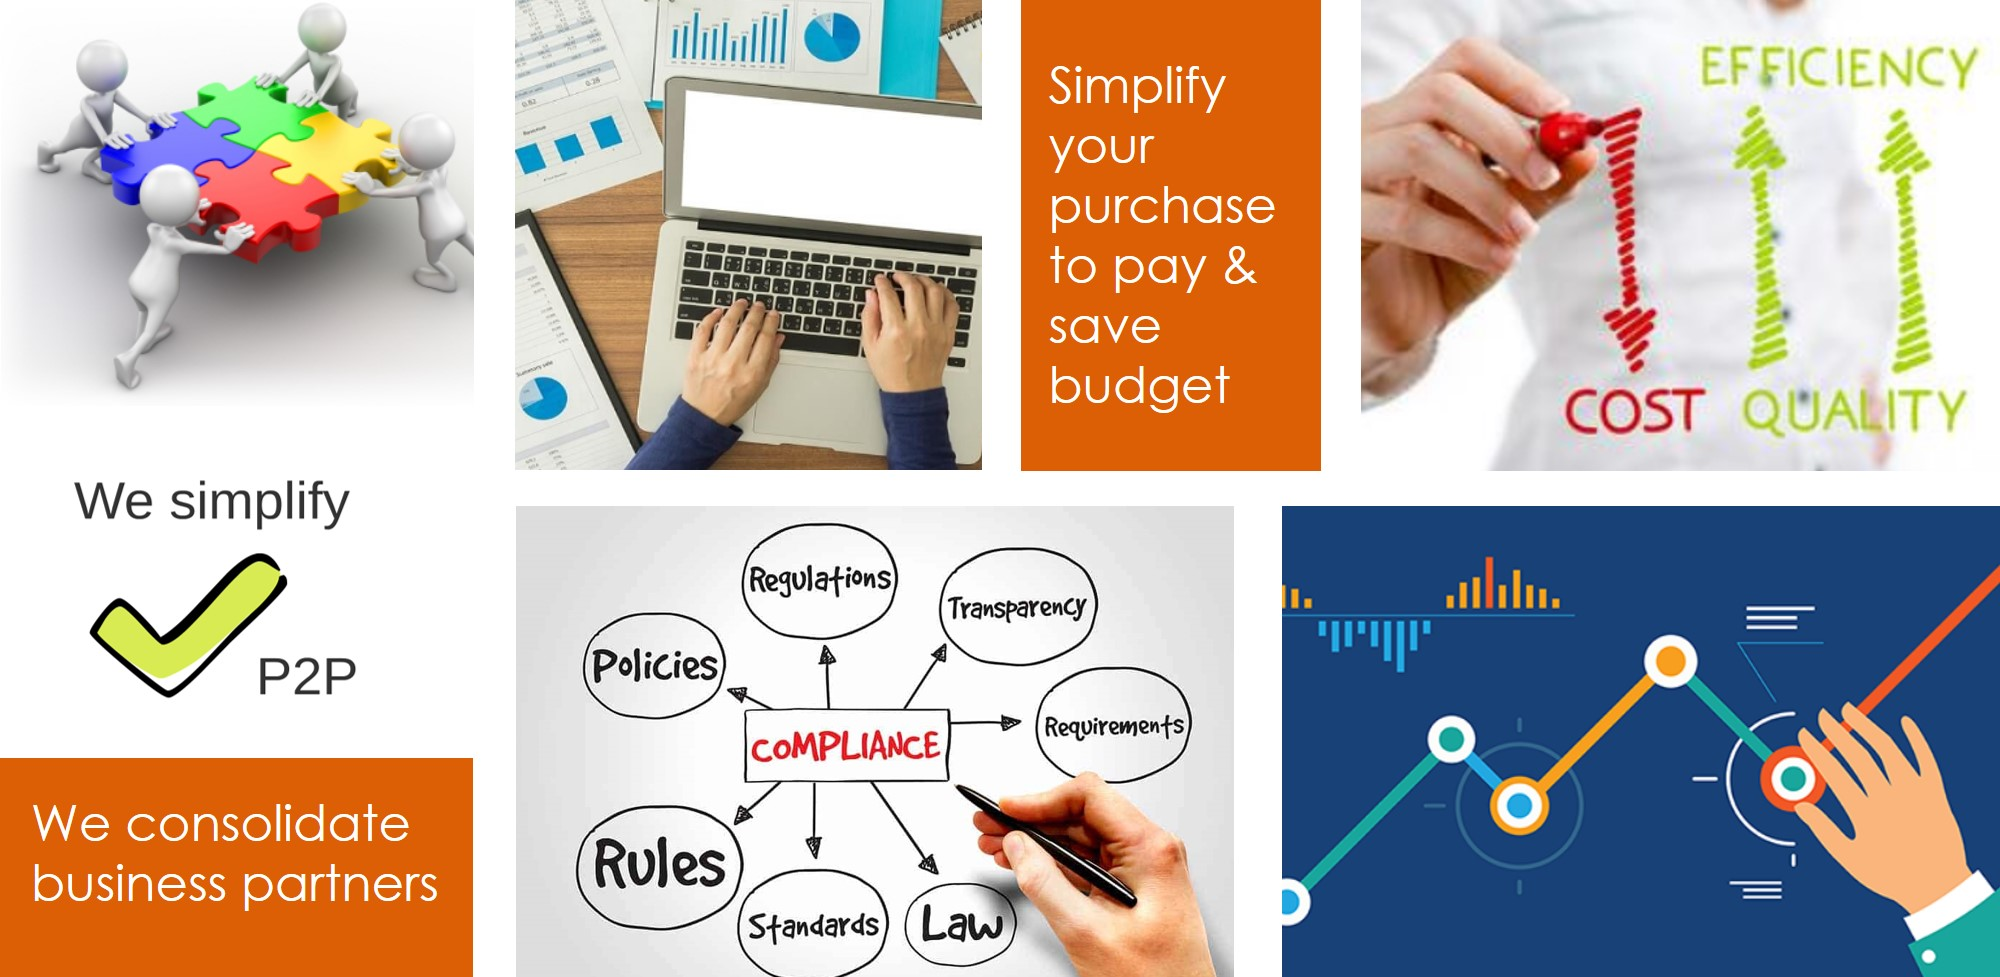 Simplify purchase to pay process and save budget on meeting and incentive policy